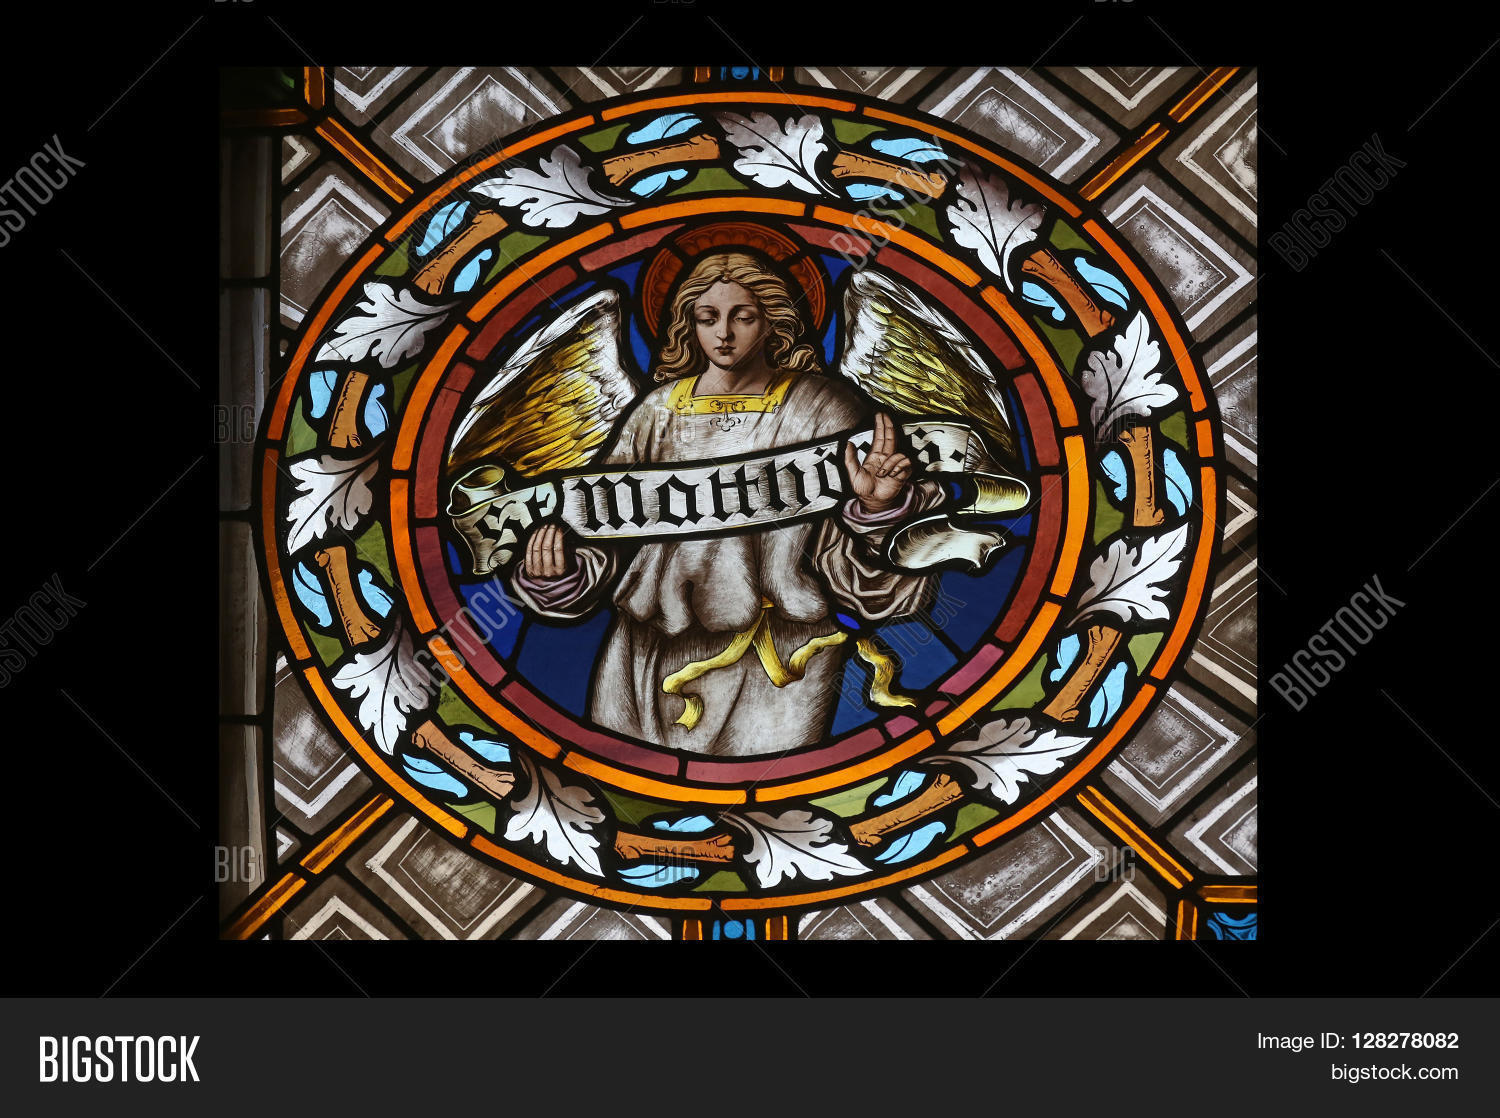 Oberstaufen germany october 20 image photo bigstock oberstaufen germany october 20 symbols of the saint matthew the evangelist stained biocorpaavc Choice Image